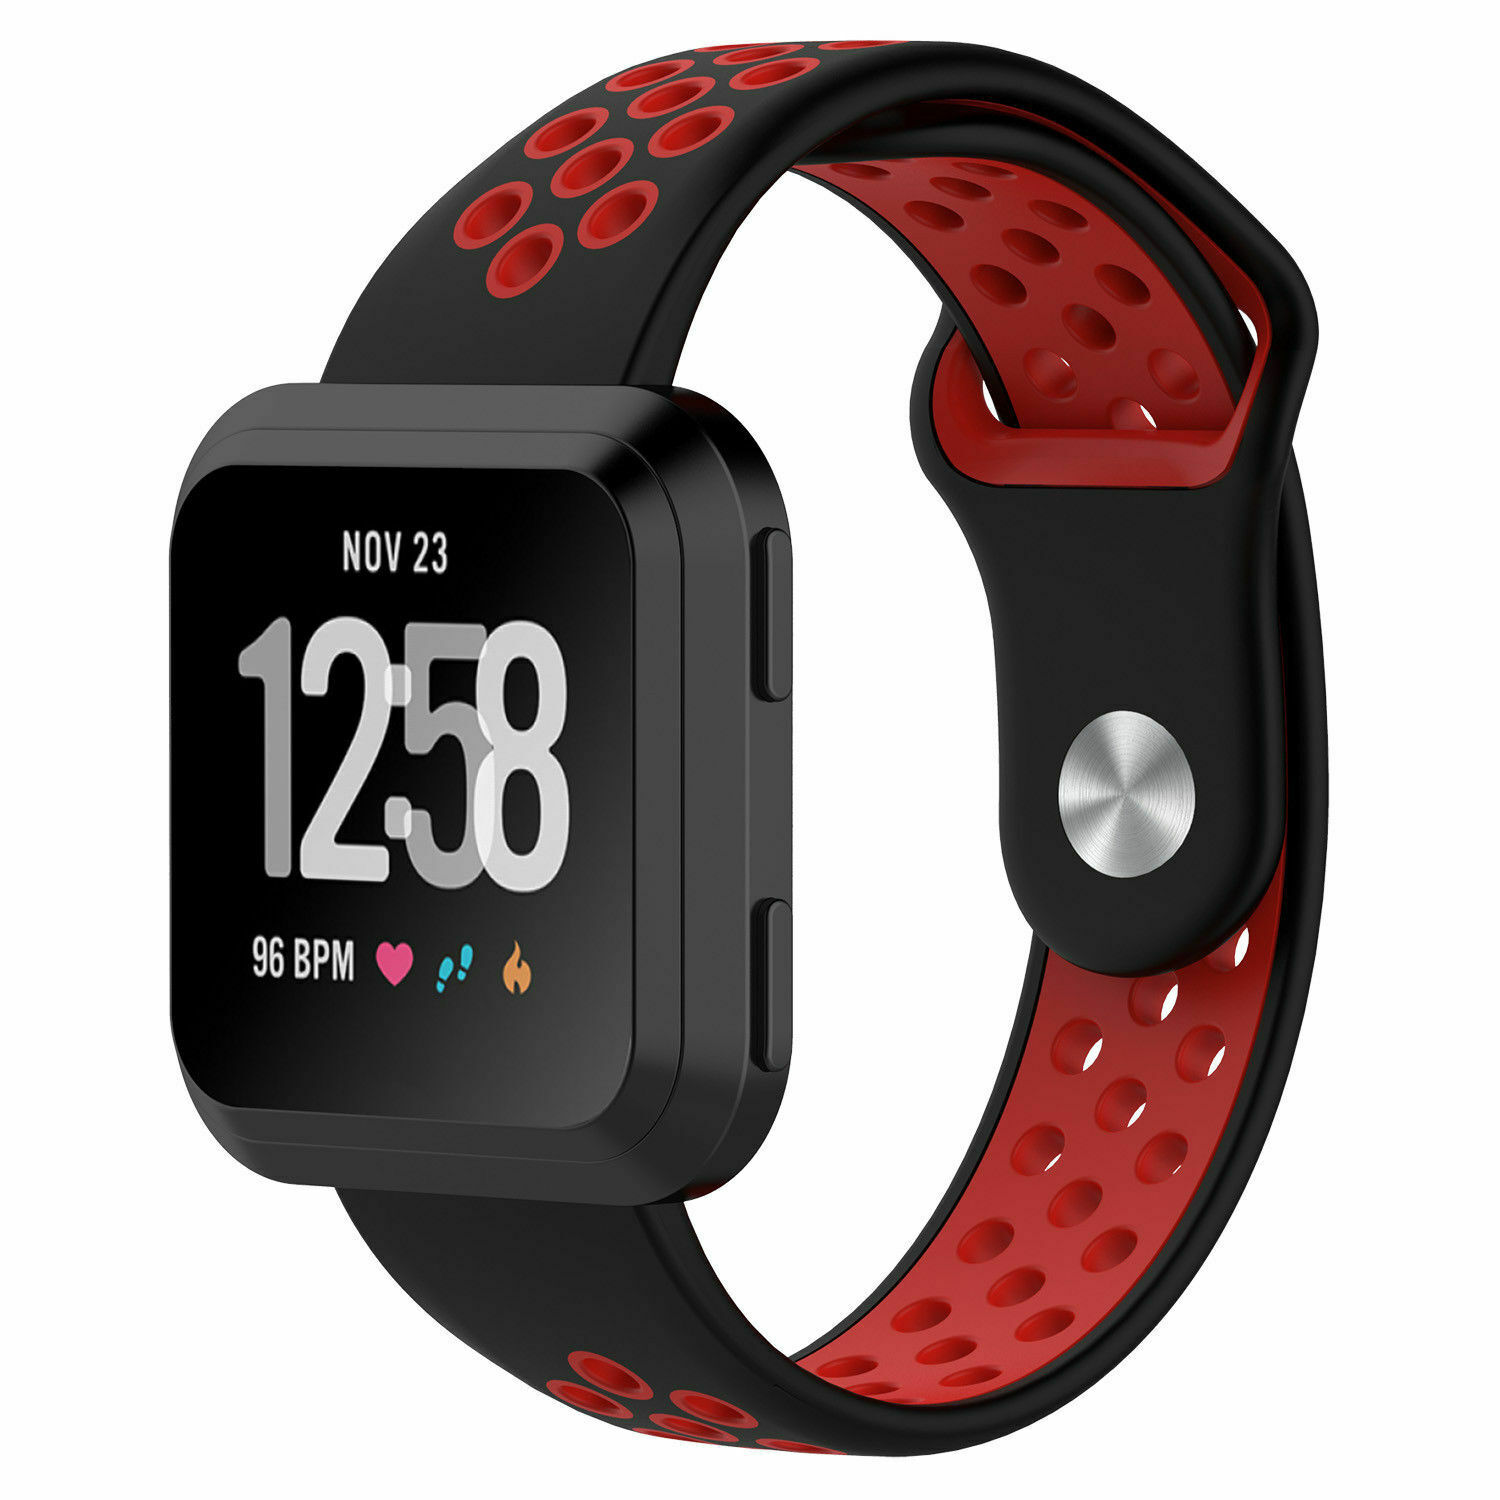 Sport Silicon Replacement Wristband Strap Breathable Watch Band For Fitbit Versa 9